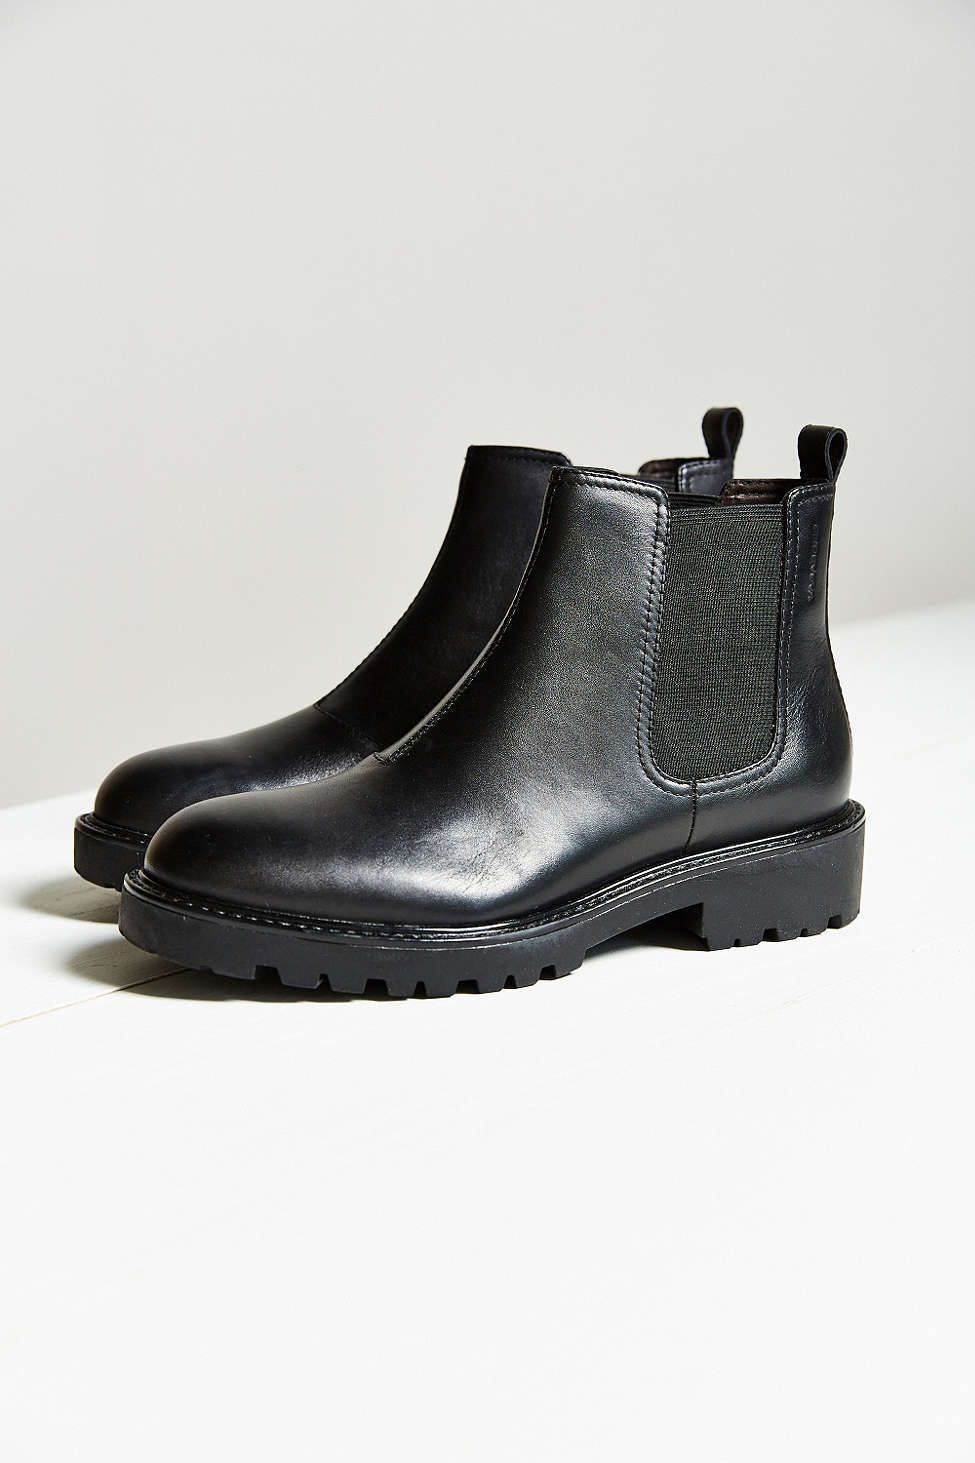 Vagabond Kenova Chelsea Boot   For the Love of Boots   Chelsea boots ... 34283e9abf